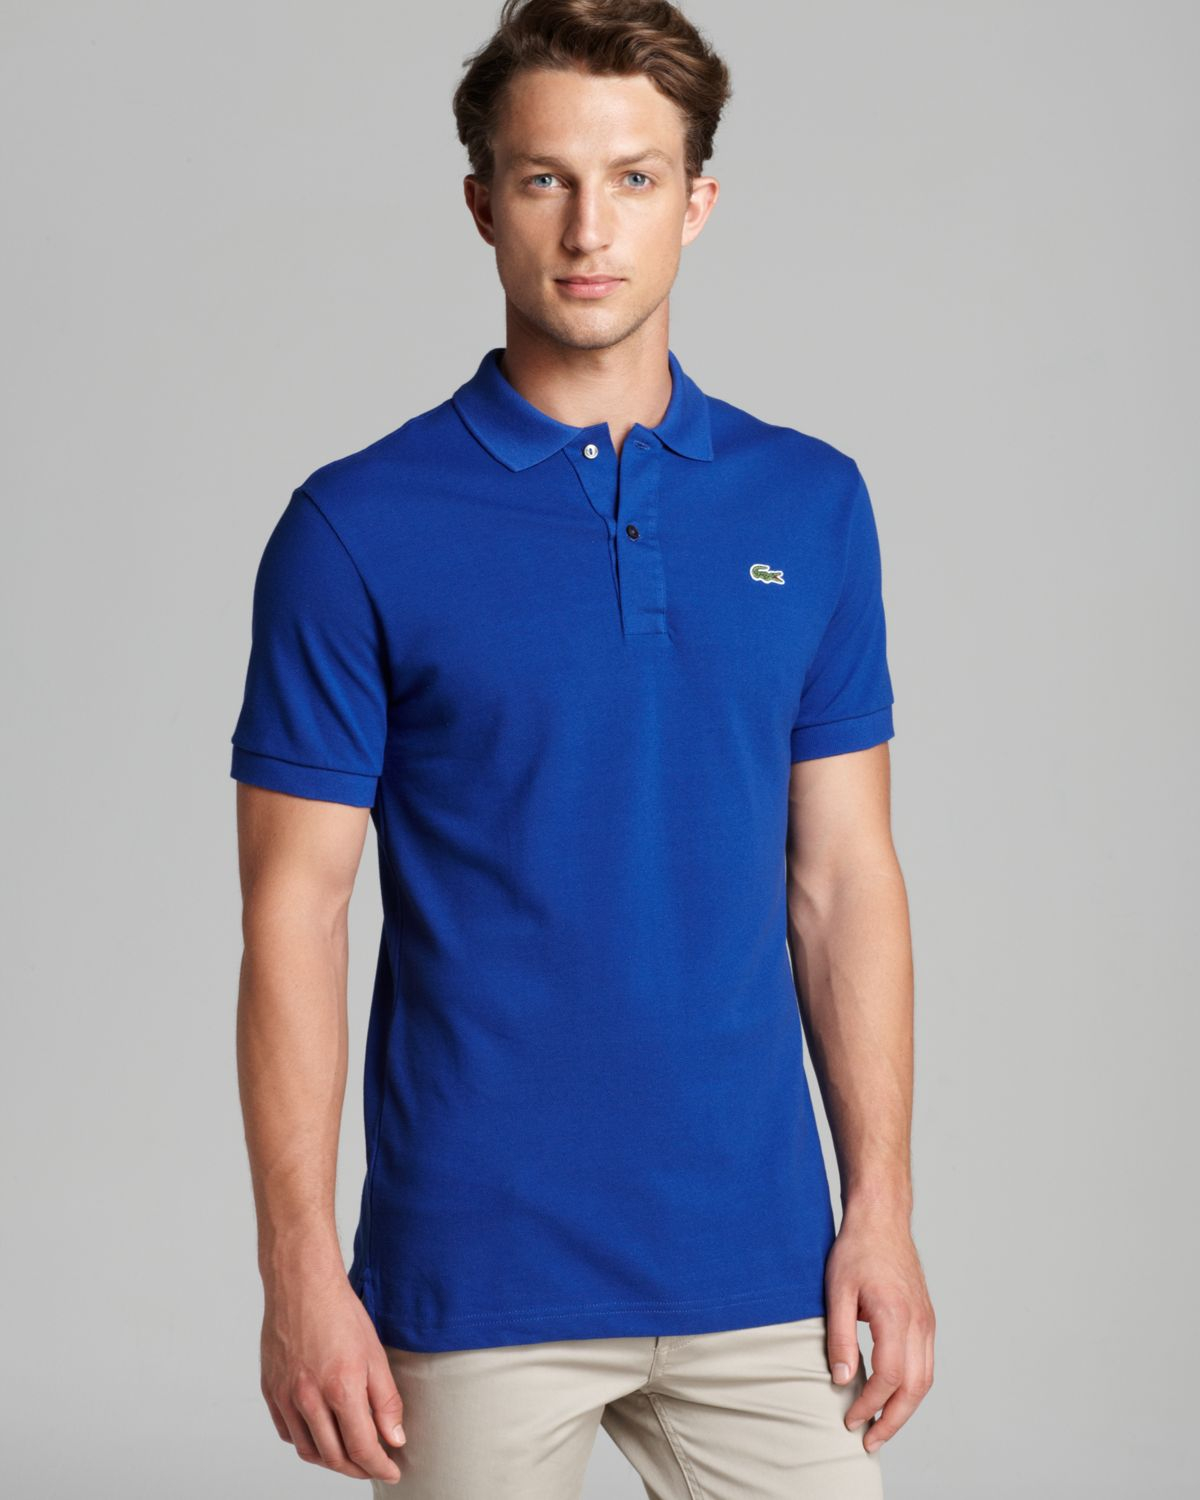 889ea066df Lacoste Short Sleeve Pique Polo Shirt - Classic Fit in Yellow for ...